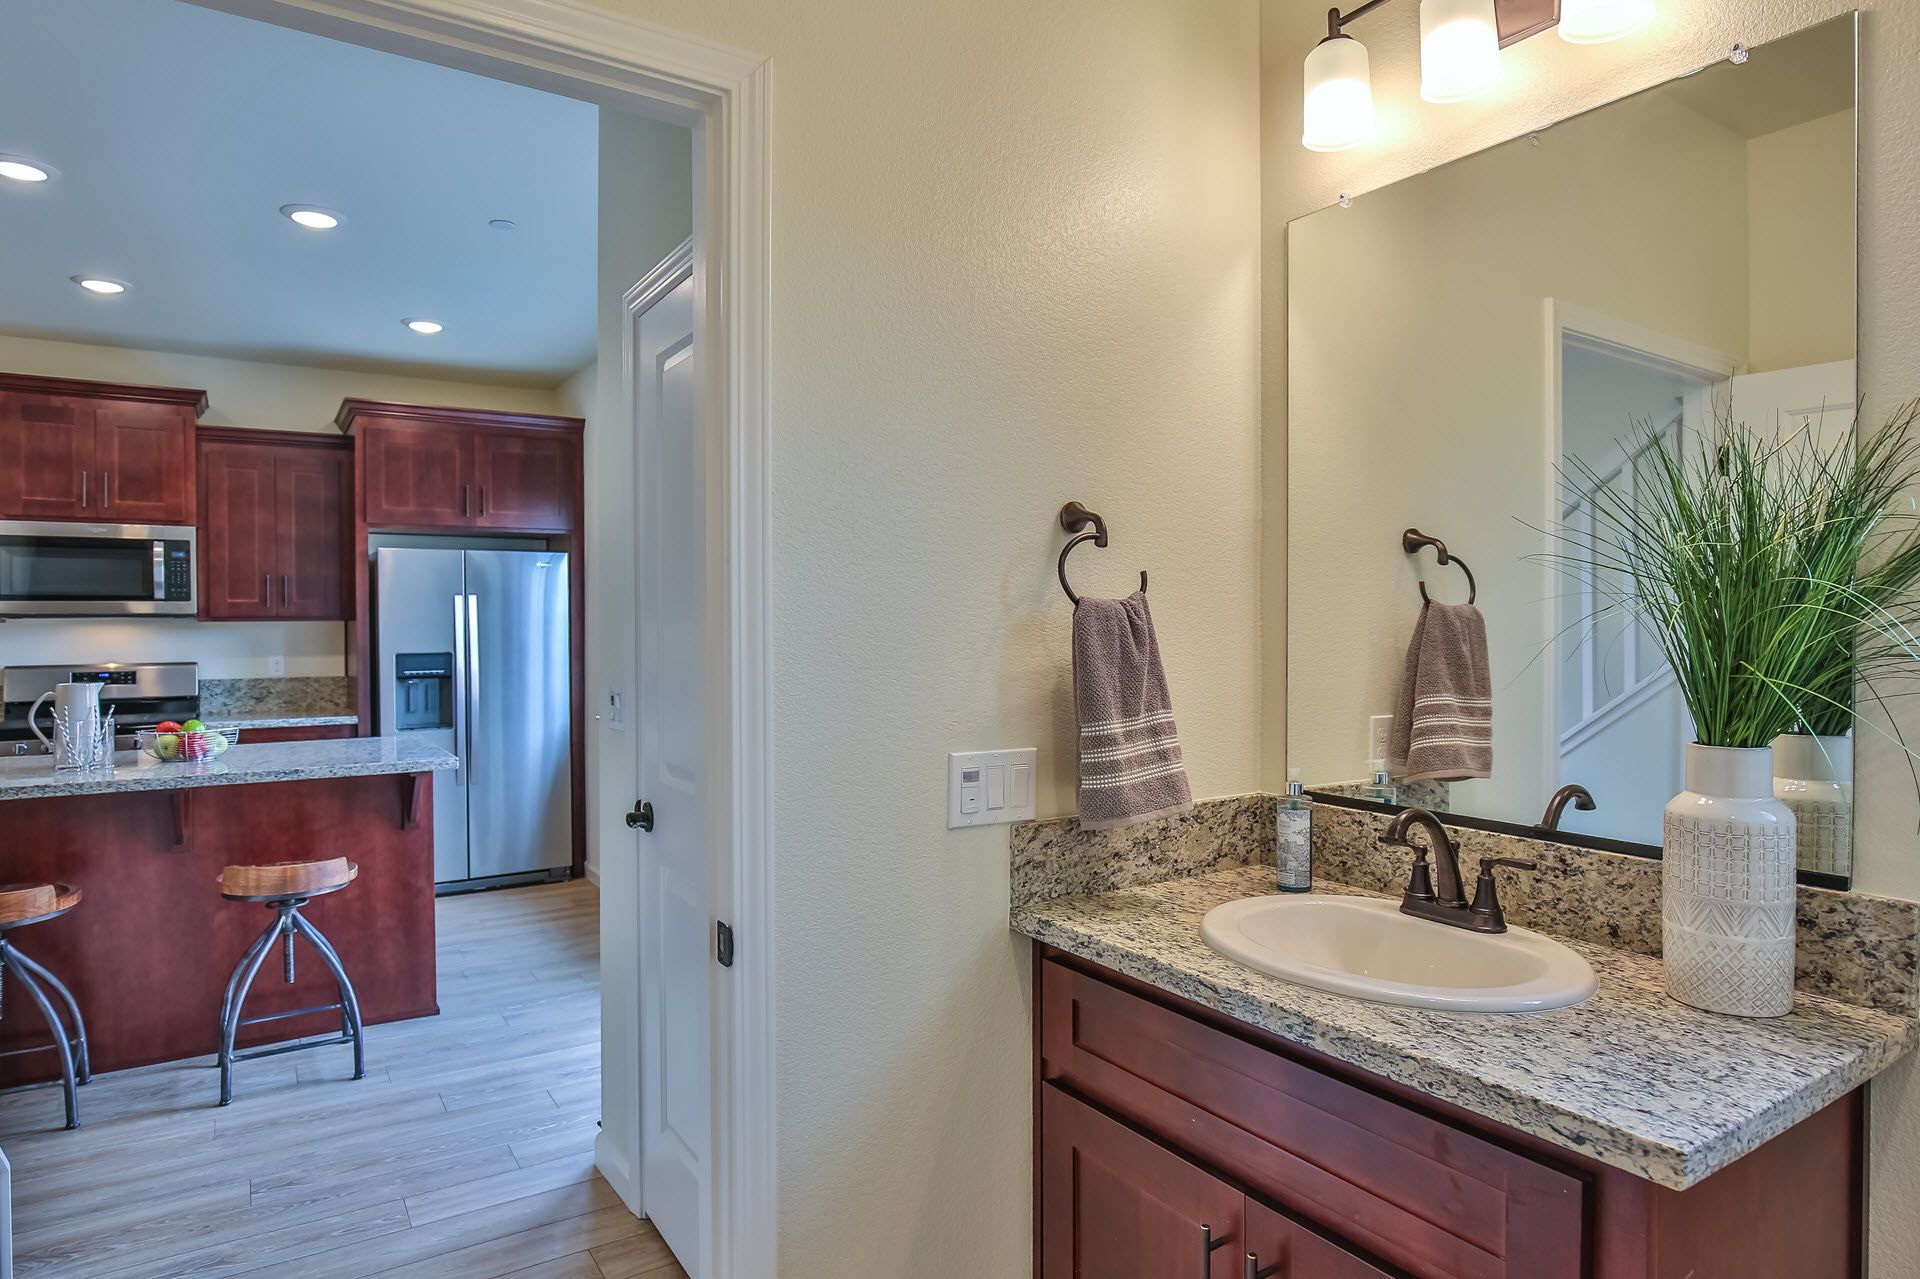 Bathroom featured in the Residence 1665 By Village by the Ponds  in Sacramento, CA